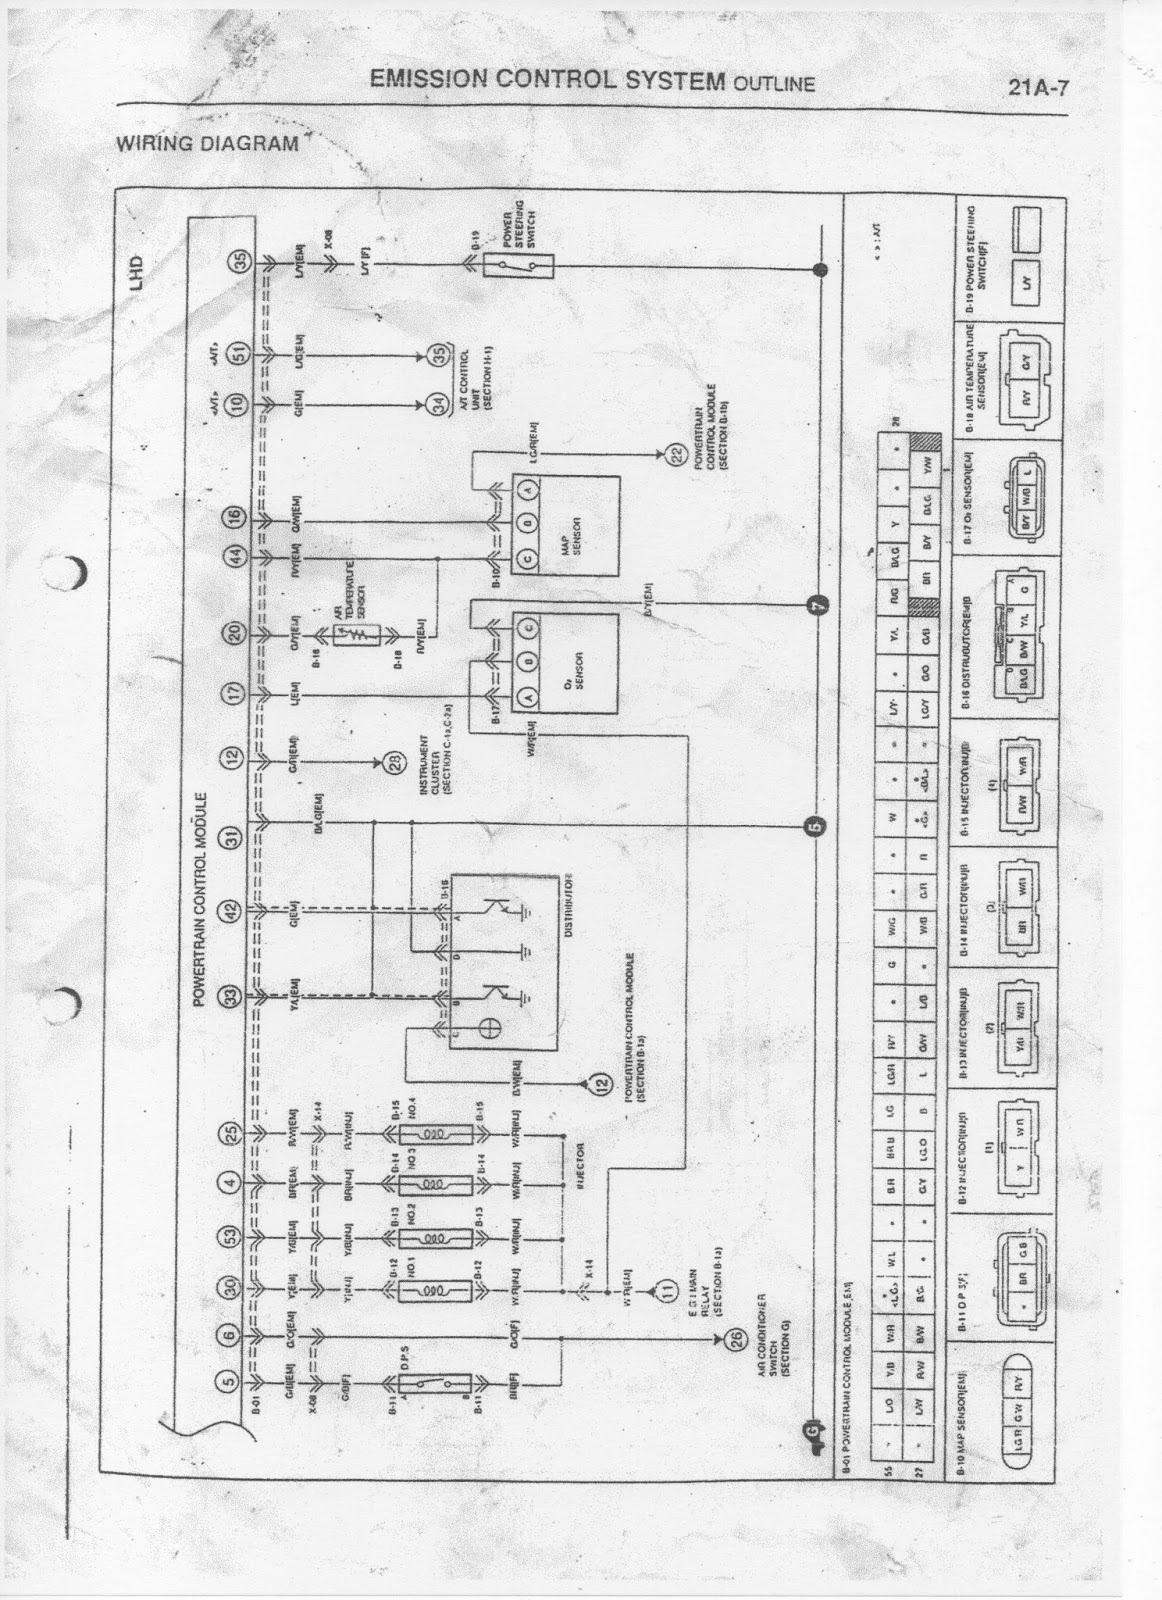 Wiring diagram ac toyota avanza free download wiring diagram xwiaw free download wiring diagram wiring diagram kia sephia master mobil efi of wiring diagram ac cheapraybanclubmaster Images